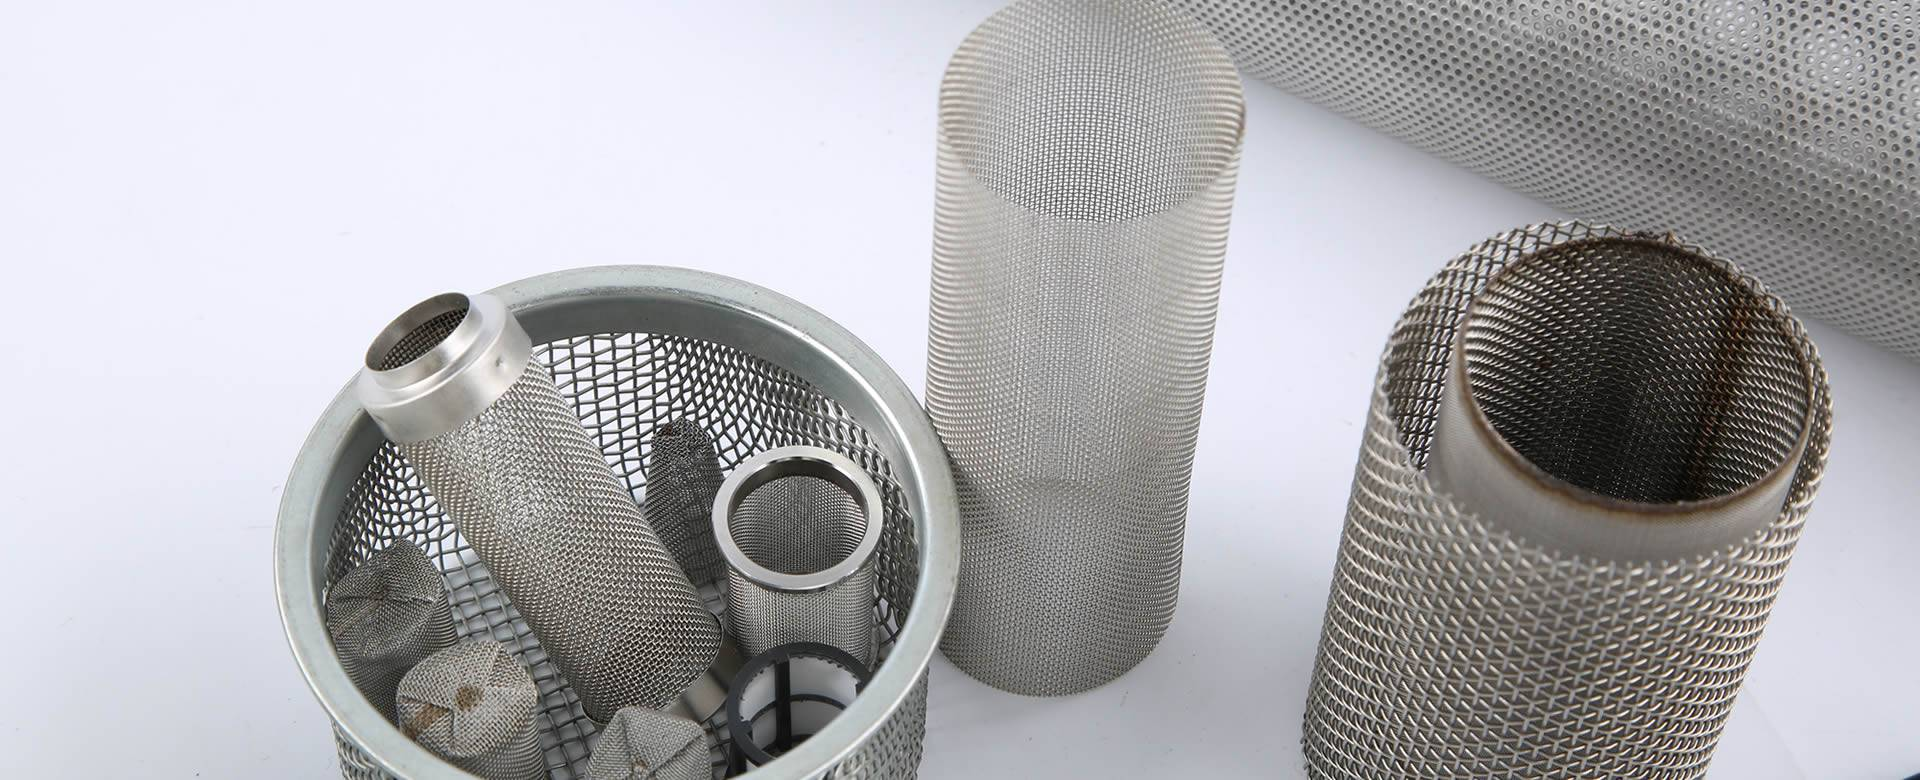 There are various sizes of cylindrical extruder screens.